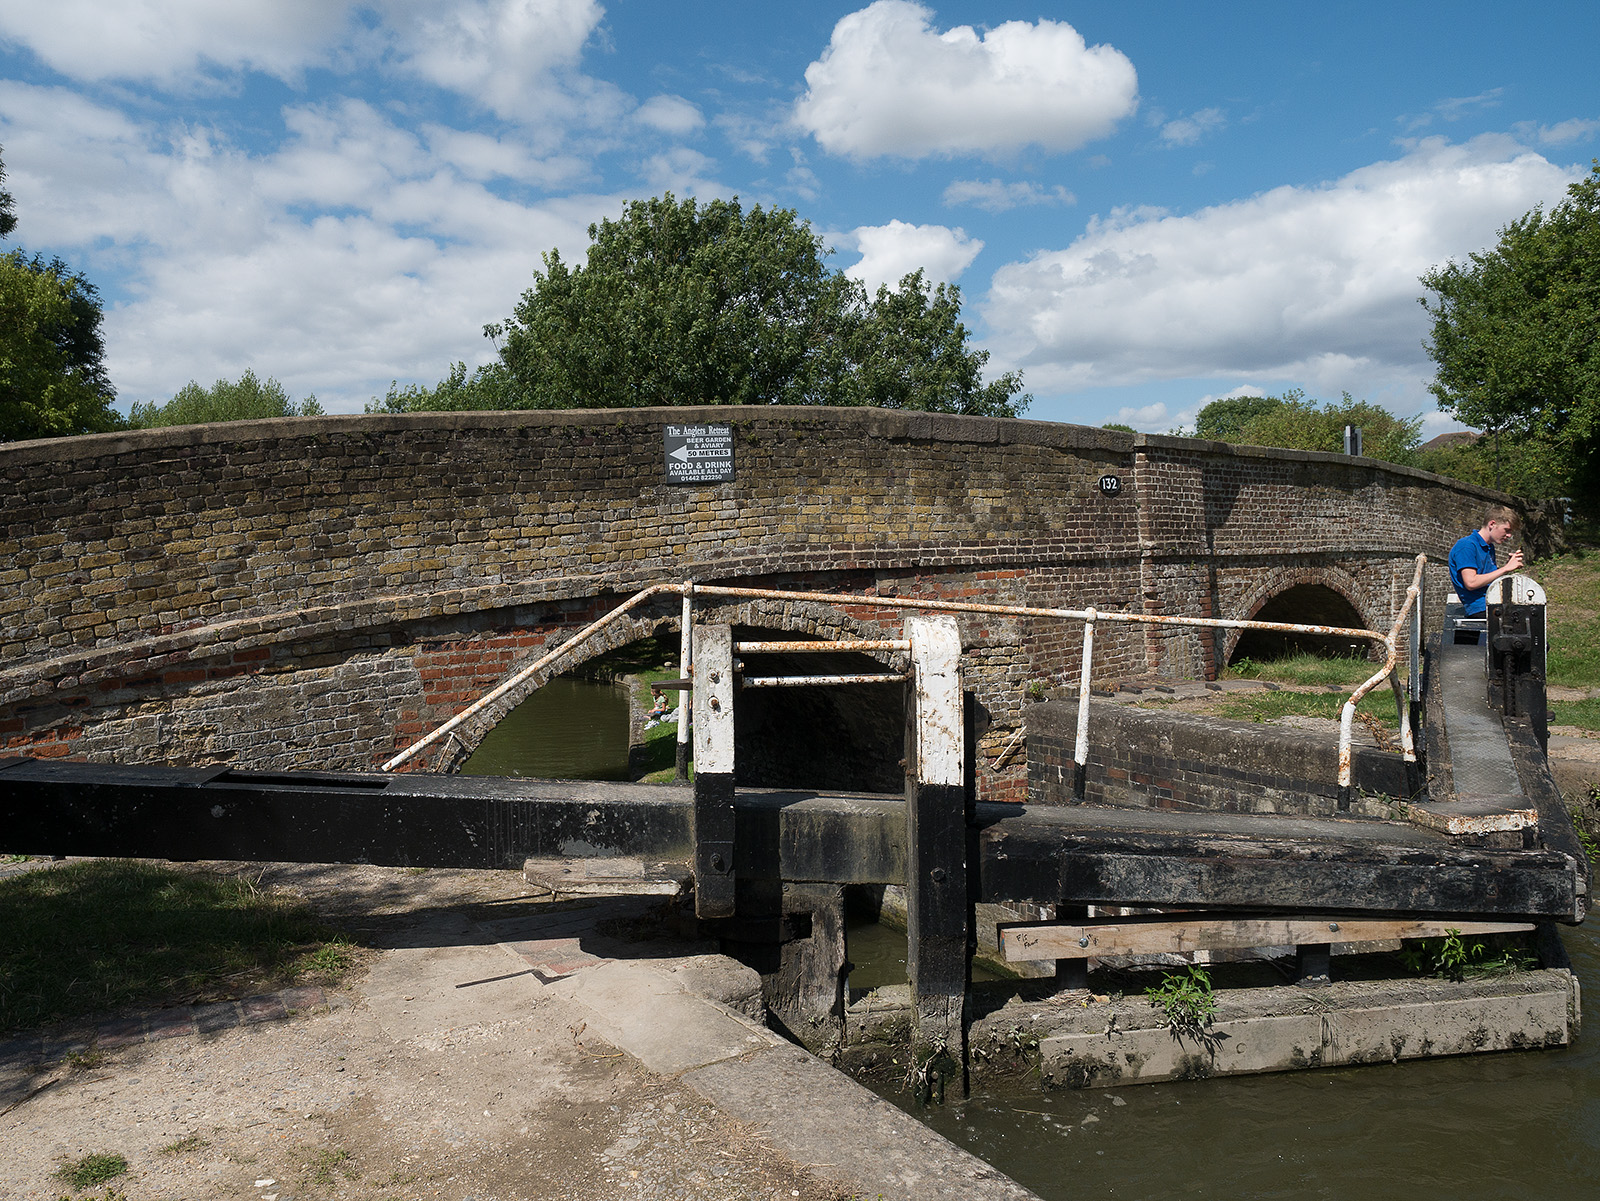 Lower Icknield bridge (note the unused archway)